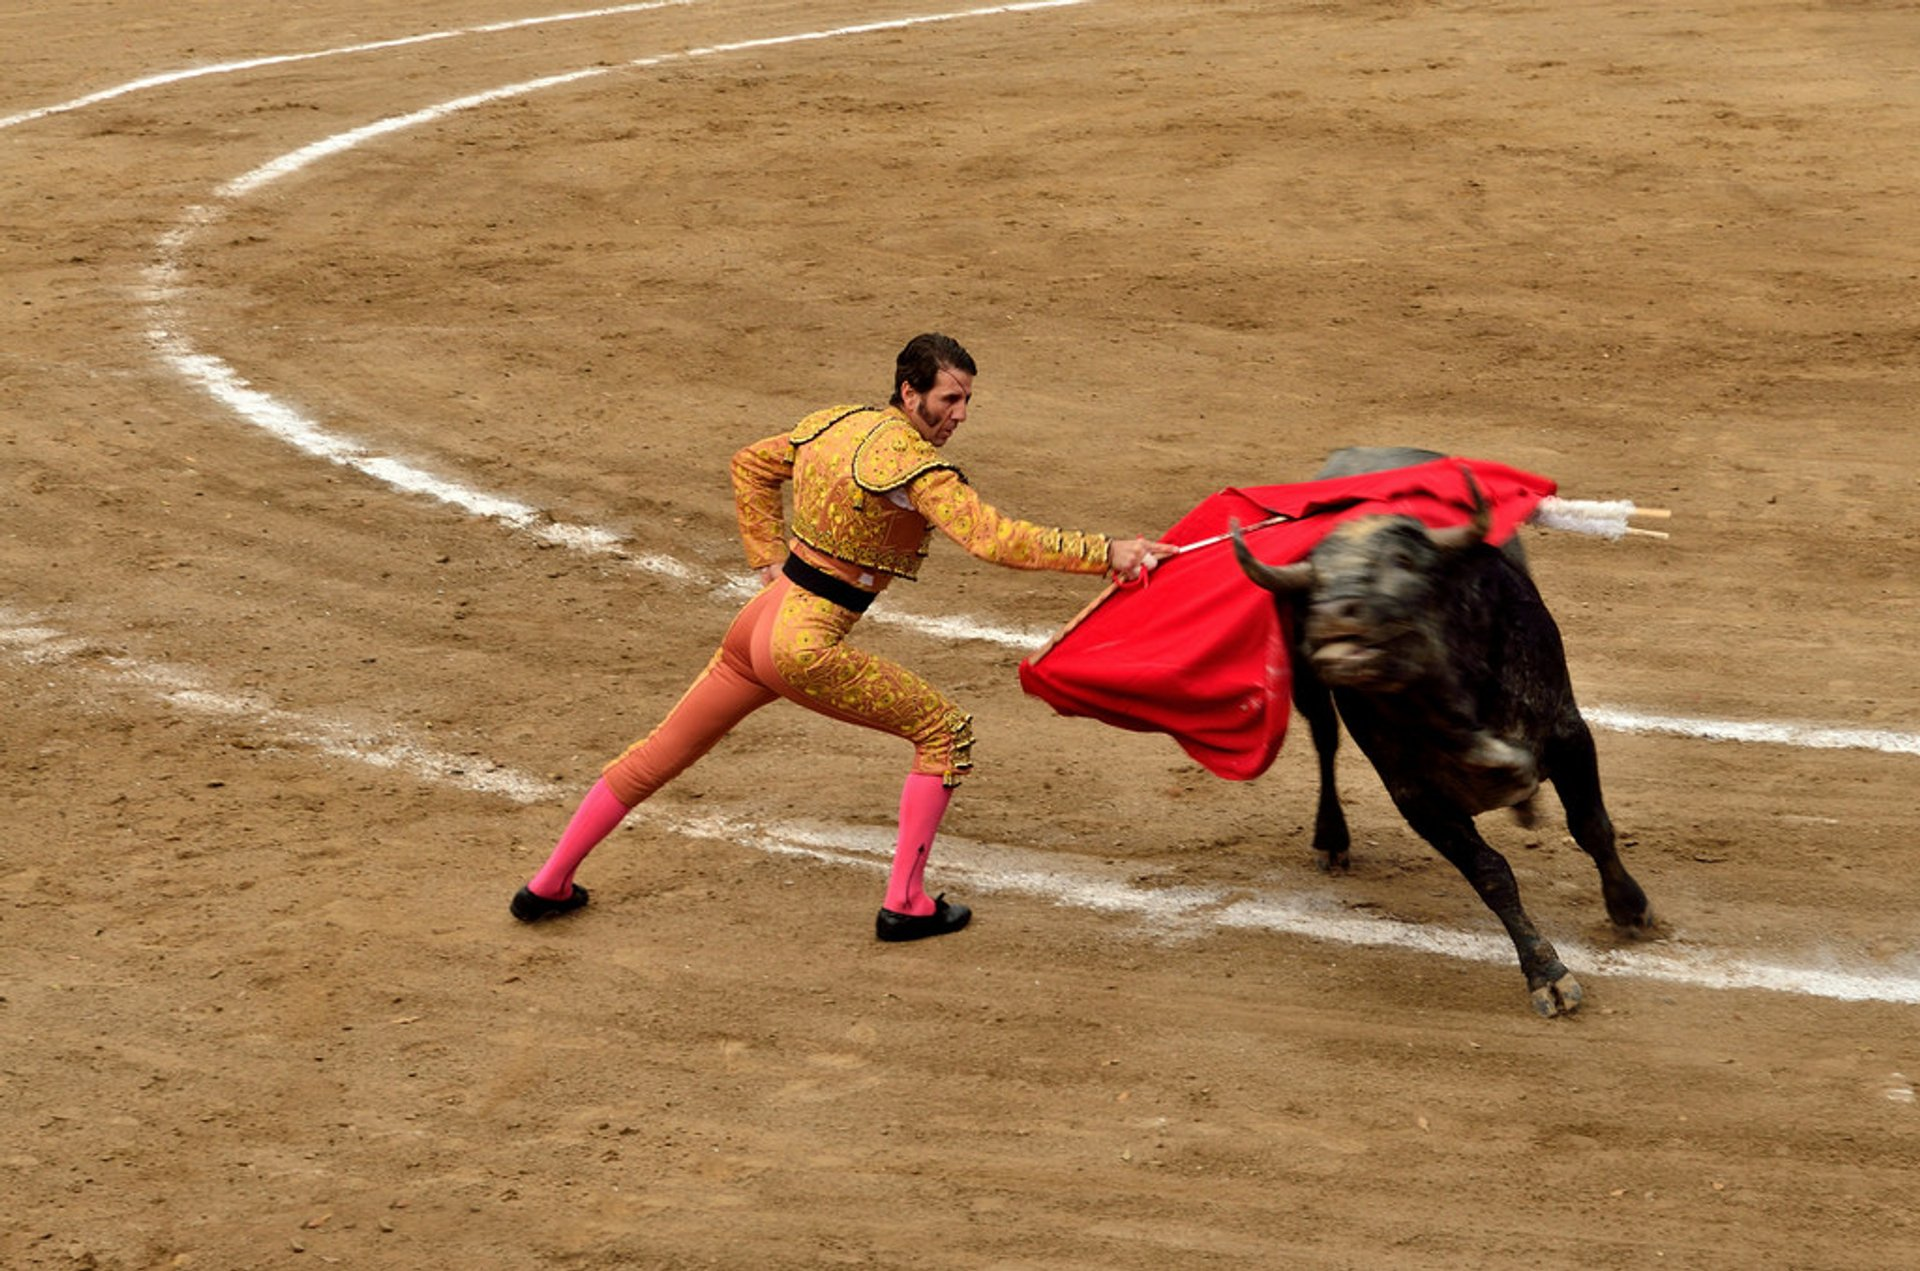 Bullfights in Mexico 2020 - Best Time